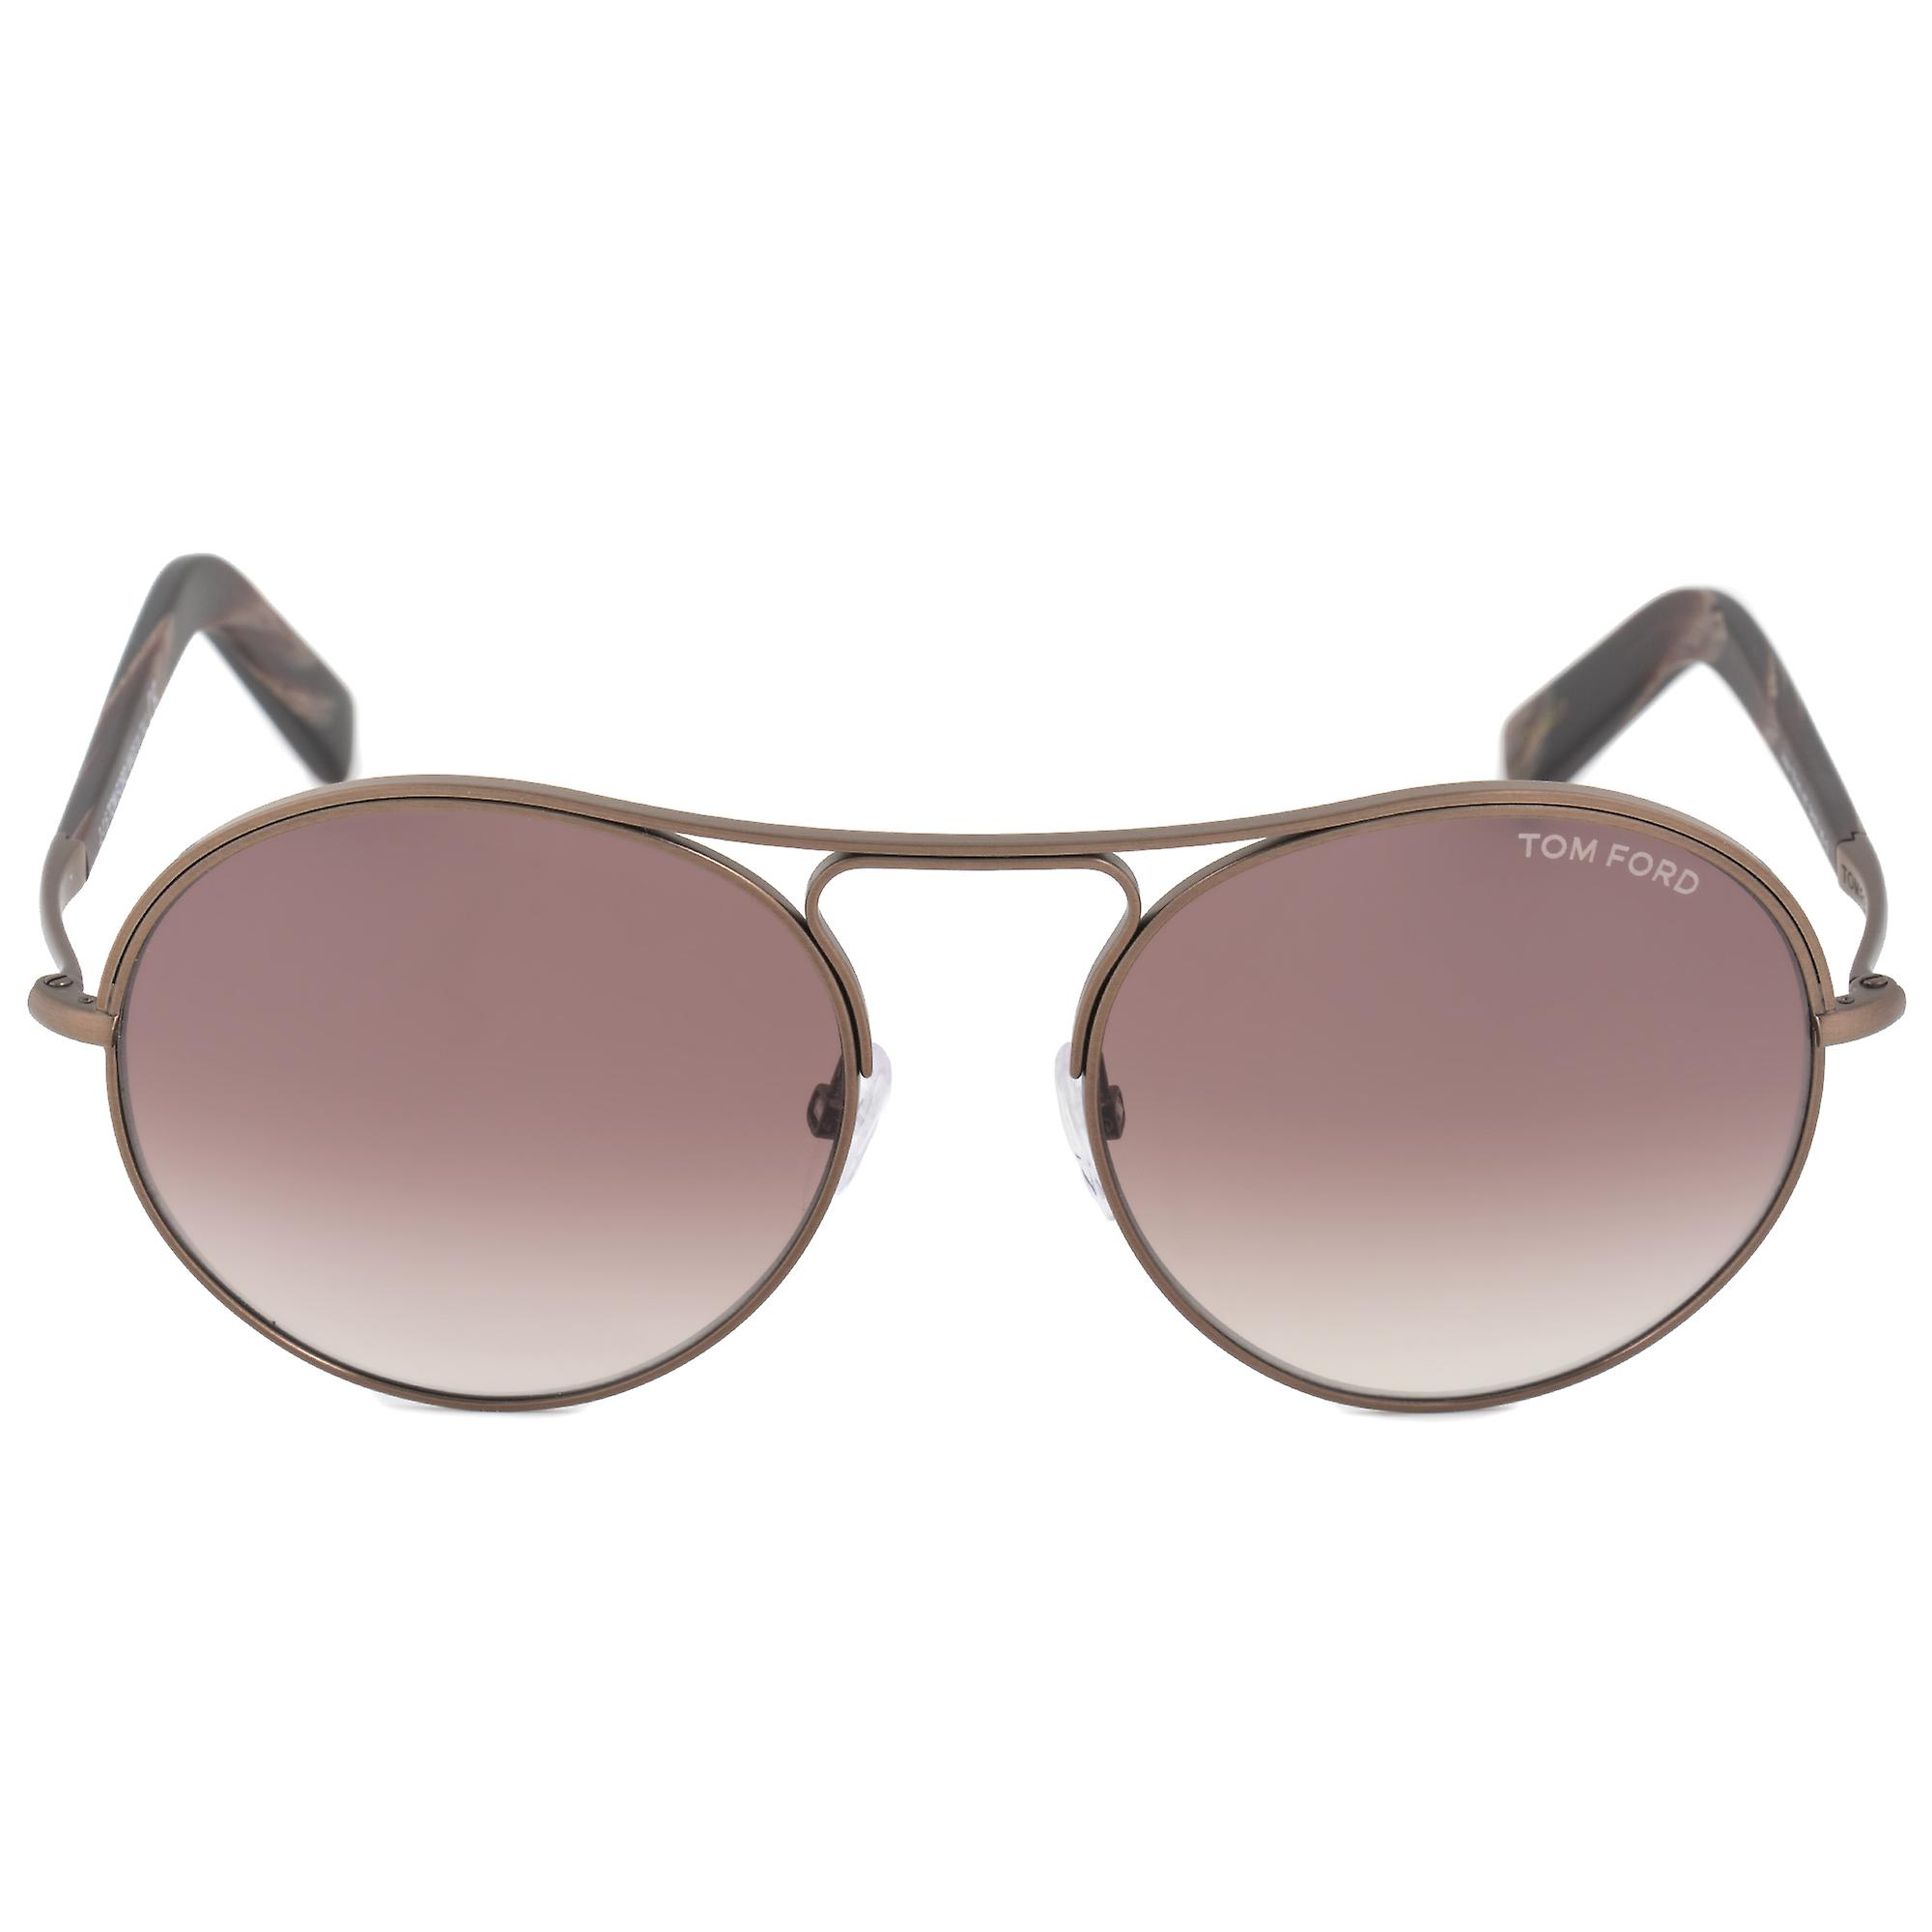 759202c7a49 Tom Ford Jessie Women s Round Sunglasses FT0449 49T 54